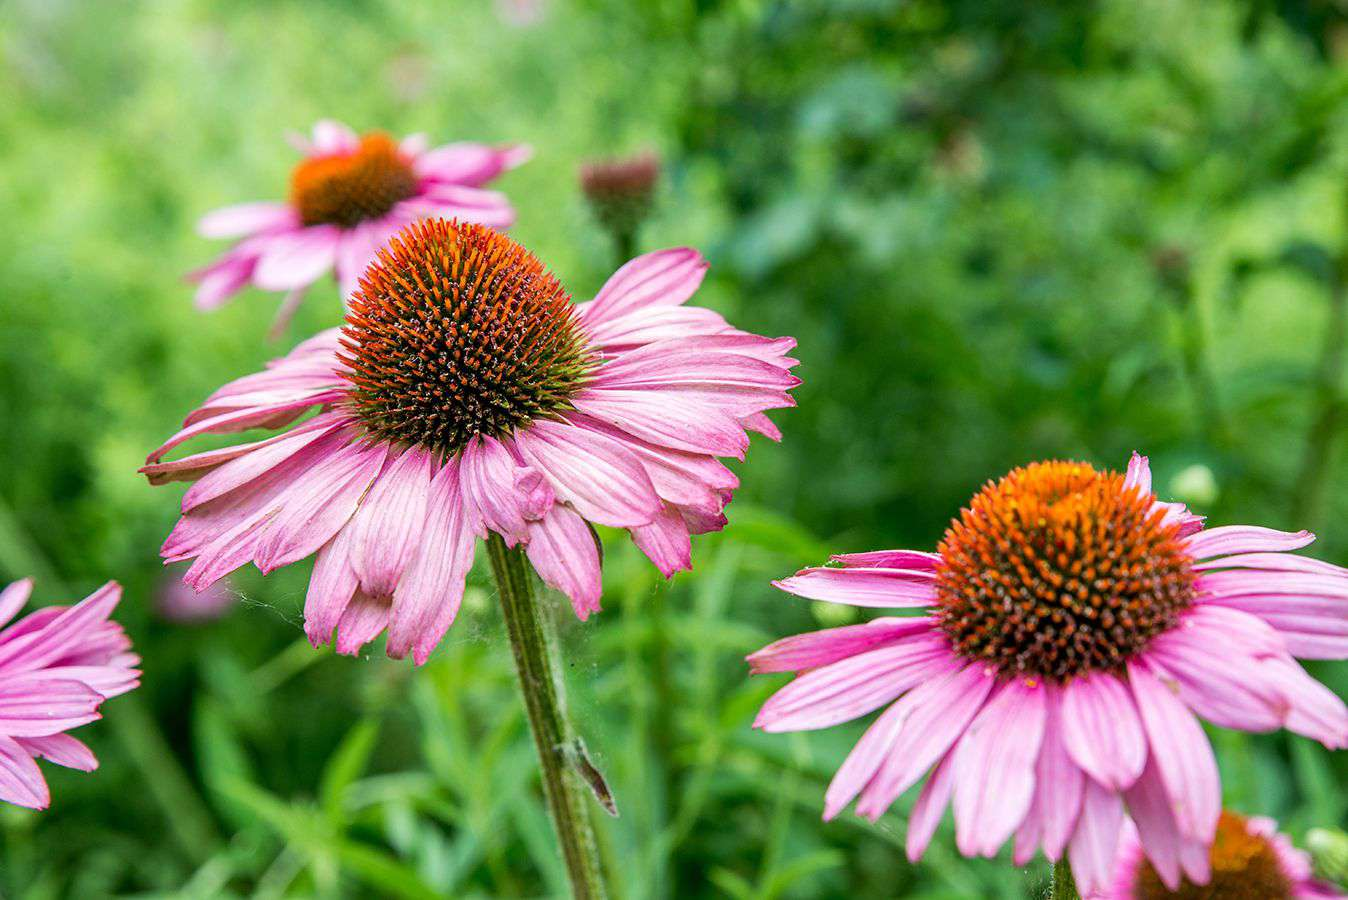 Coneflowers with pink colored petals in garden closeup